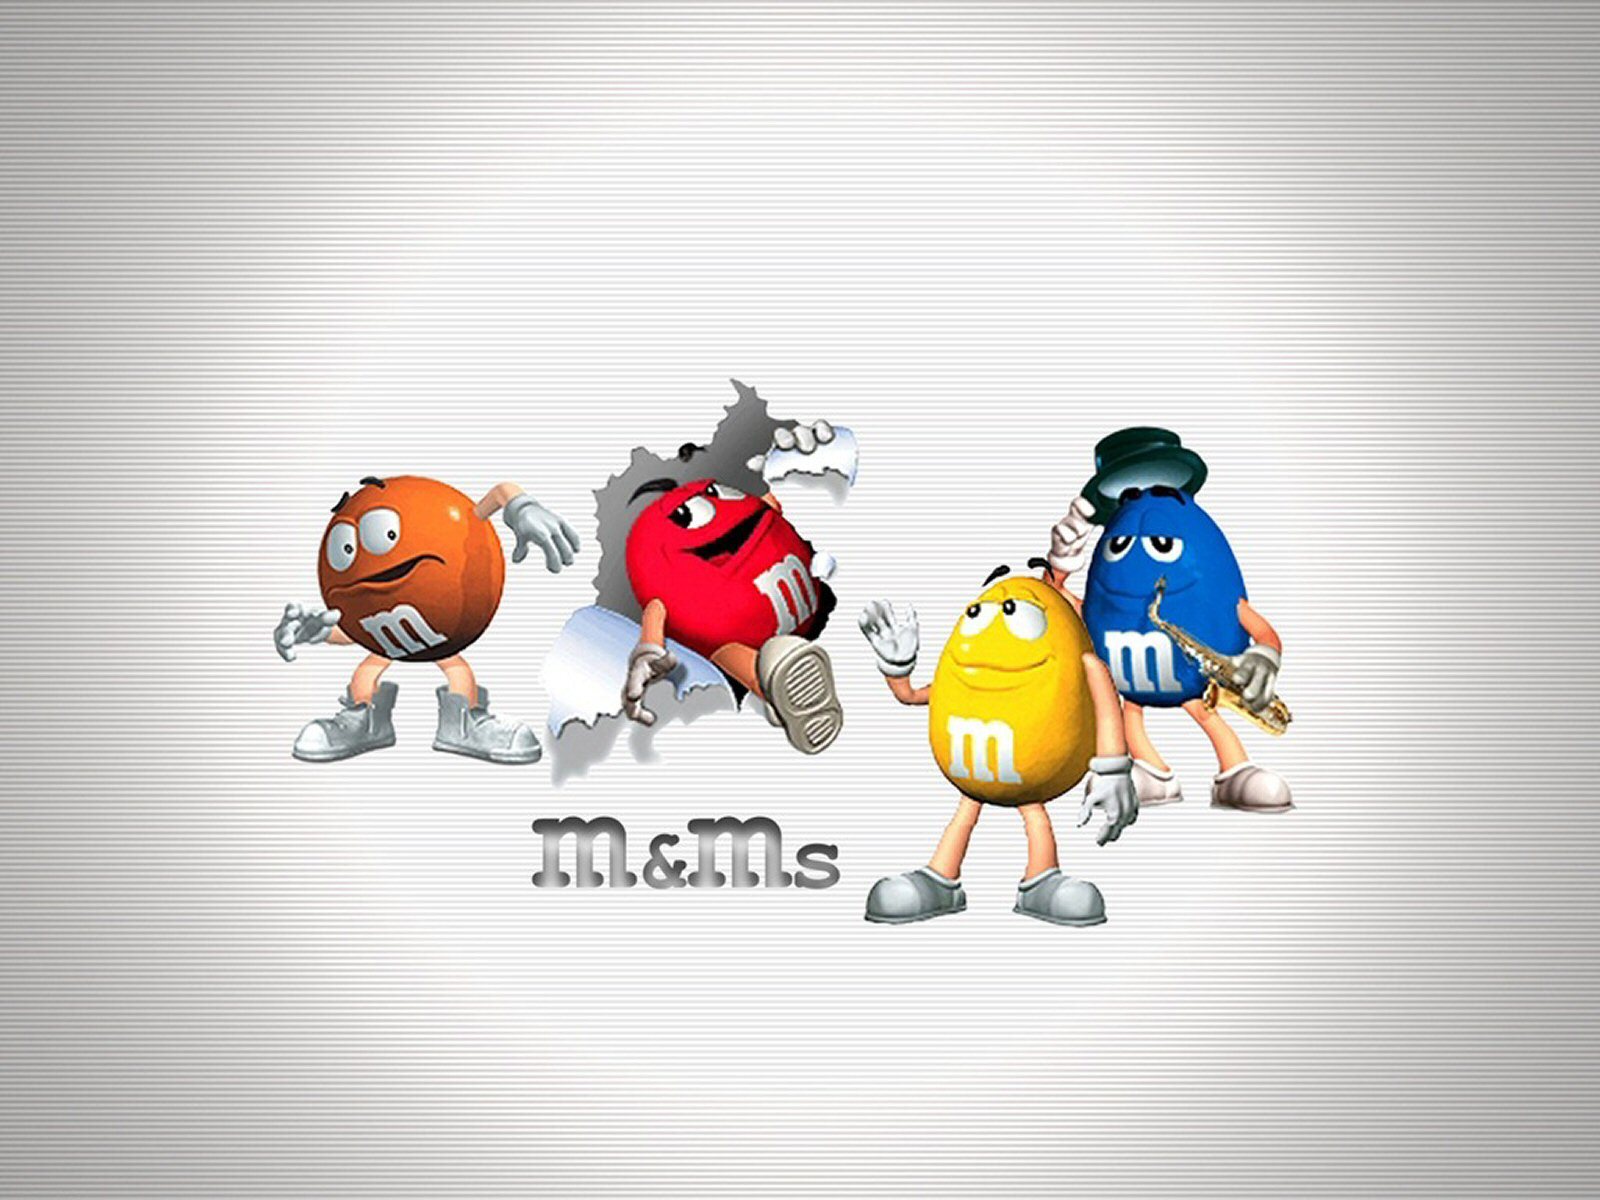 M M Desktop Wallpaper: Wallpaper M&M